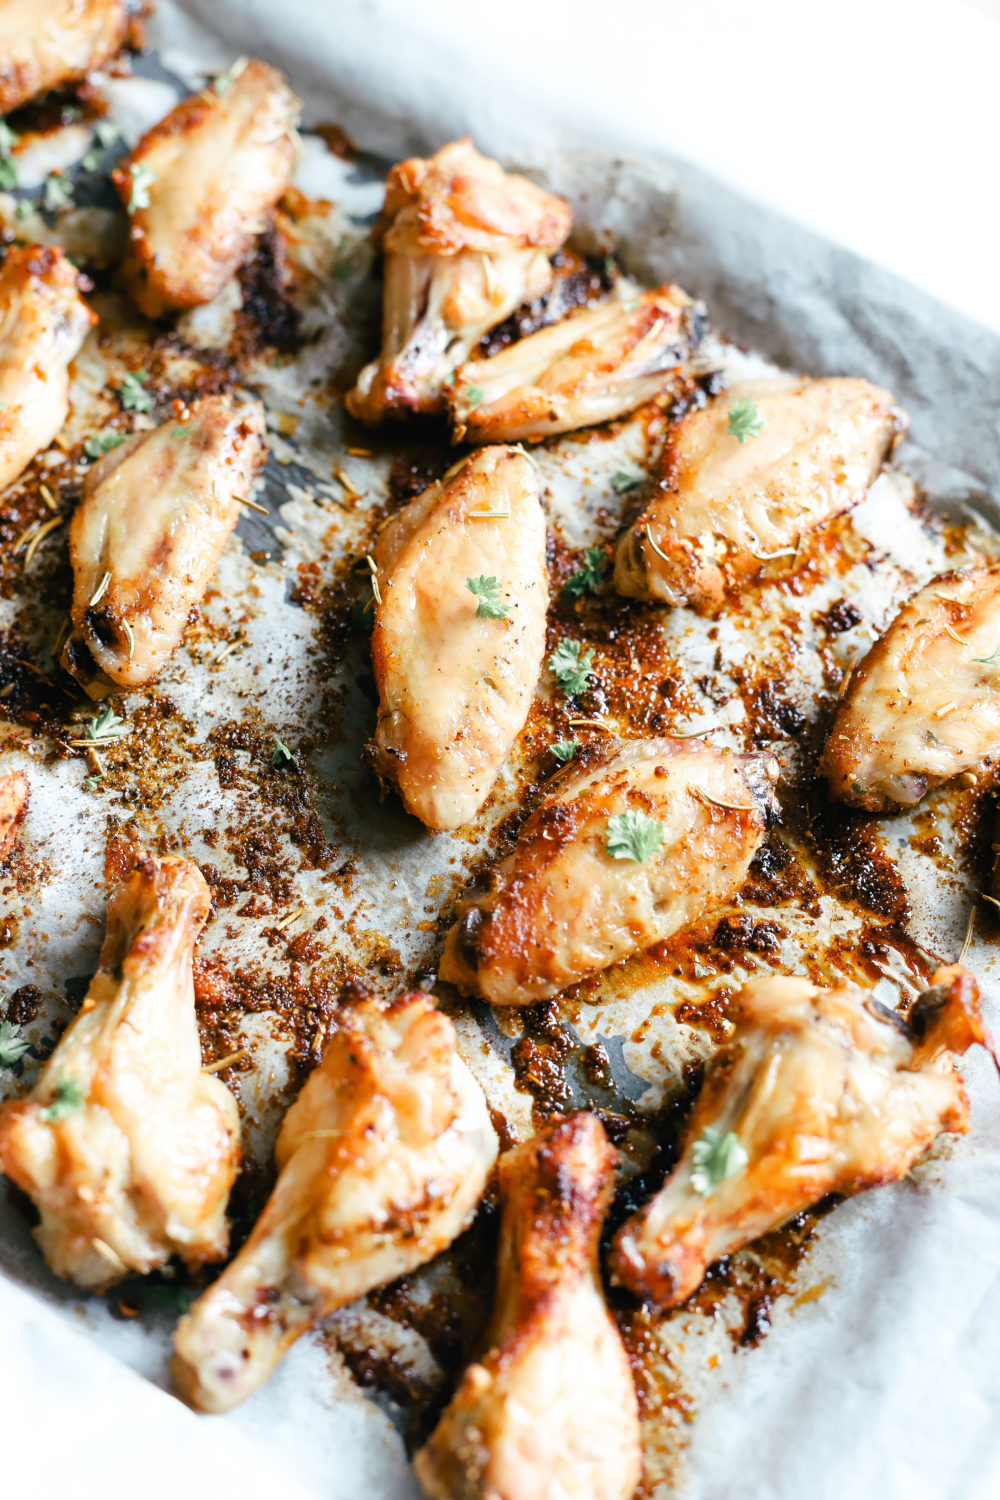 Low carb and full of flavour! An easy dinner to make, simply pair them with your favourite side salad or a dip and enjoy! Dry Rub Chicken Wings | Keto | Ketogenic | Easy Dinner Recipes | Naked Chicken Wing Recipe | Not Breaded | Non Breaded | Gluten-Free | Paleo | Whole 30 | Game Night | Crispy | Chicken Seasoning